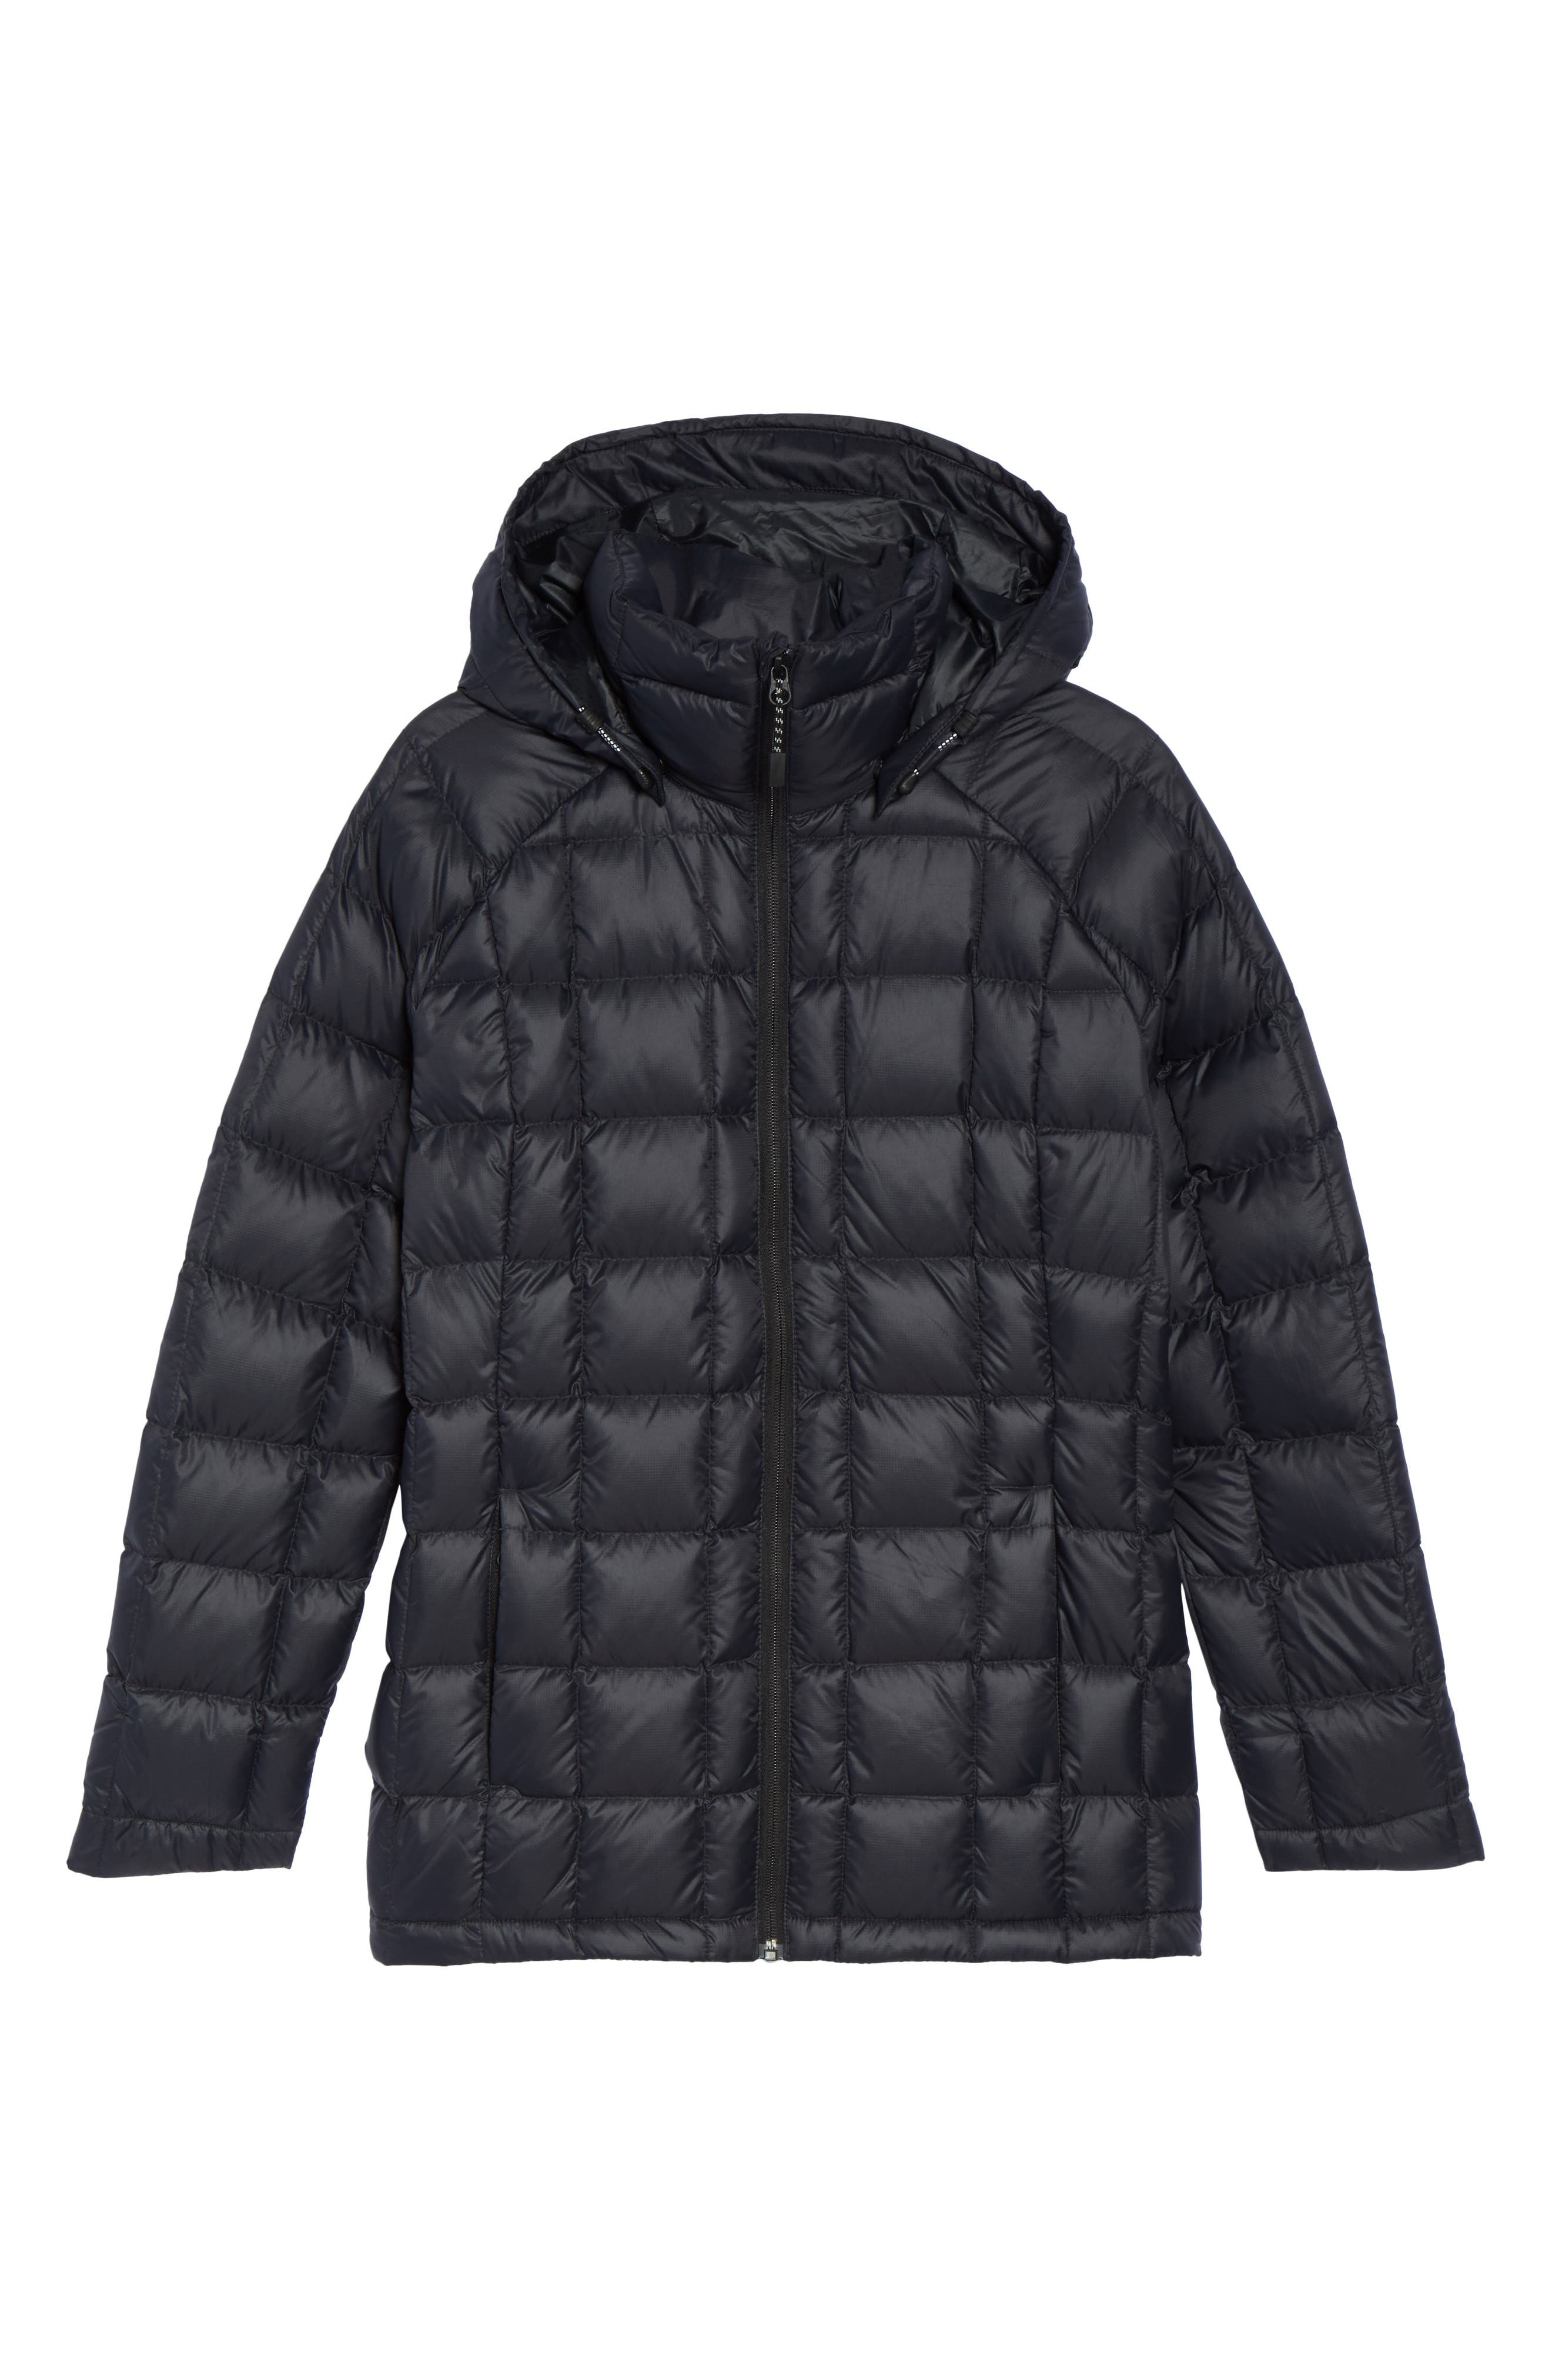 AK Baker Waterproof Quilted Down Insulator Jacket with Removable Hood,                             Alternate thumbnail 7, color,                             True Black